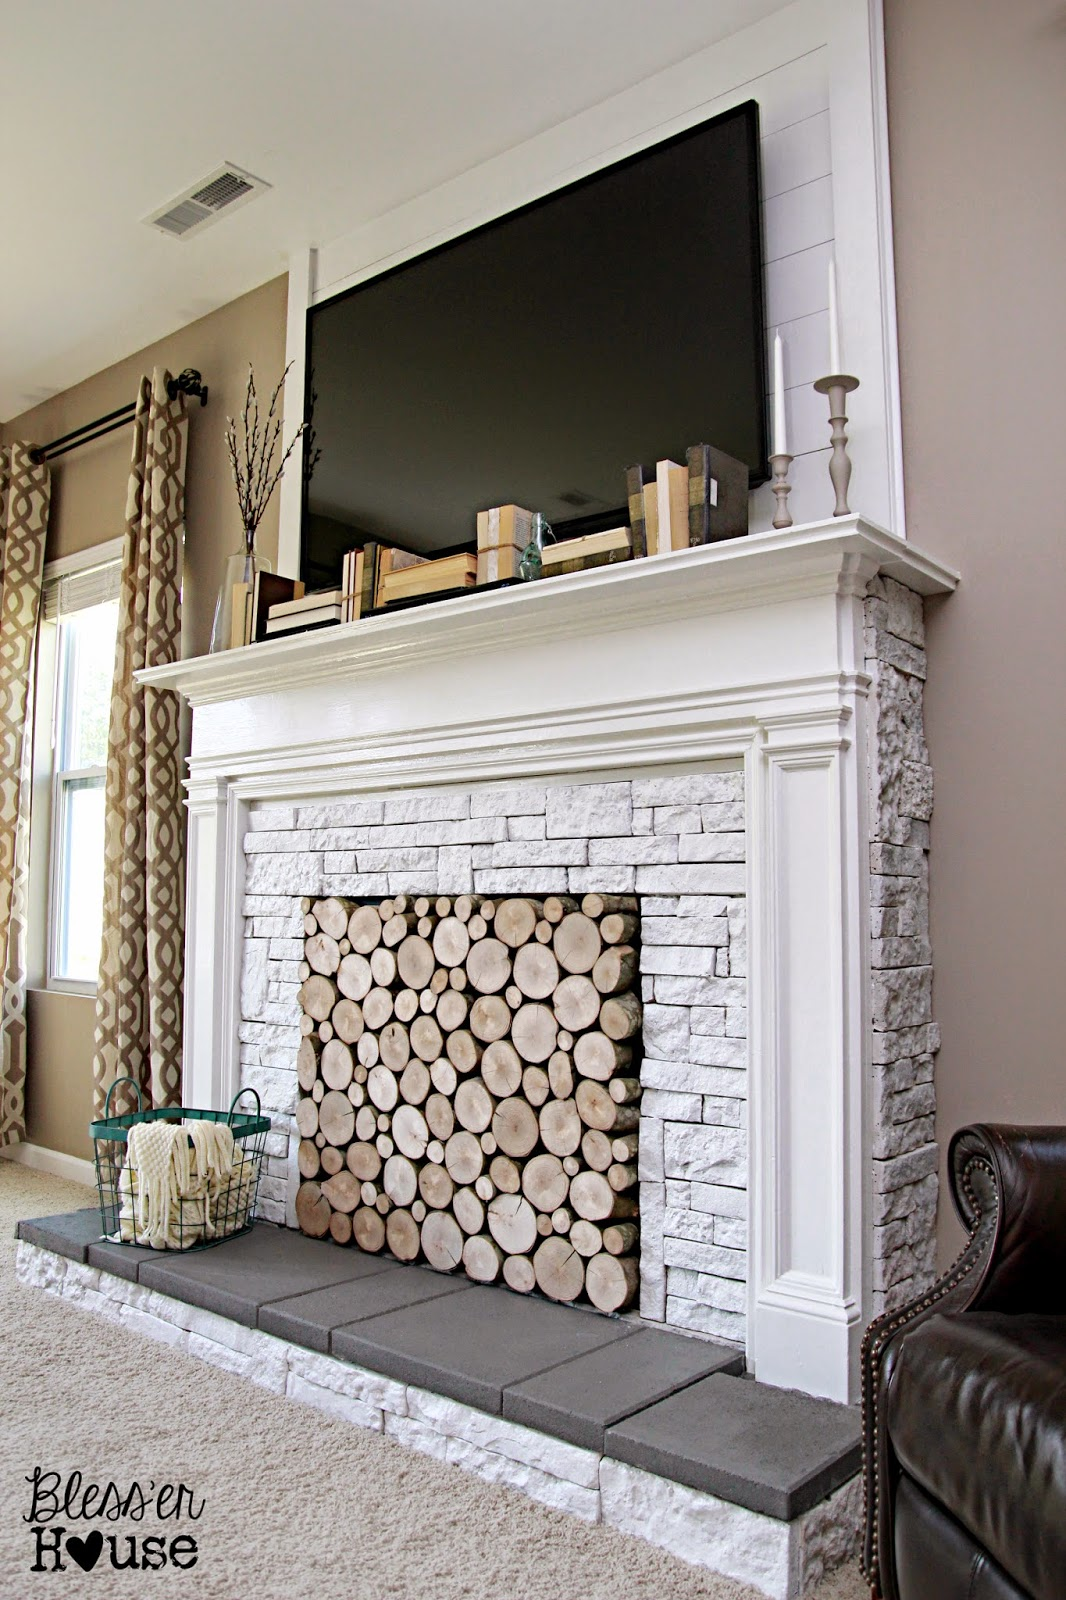 Diy faux fireplace for under 600 the big reveal bless Hide fireplace ideas